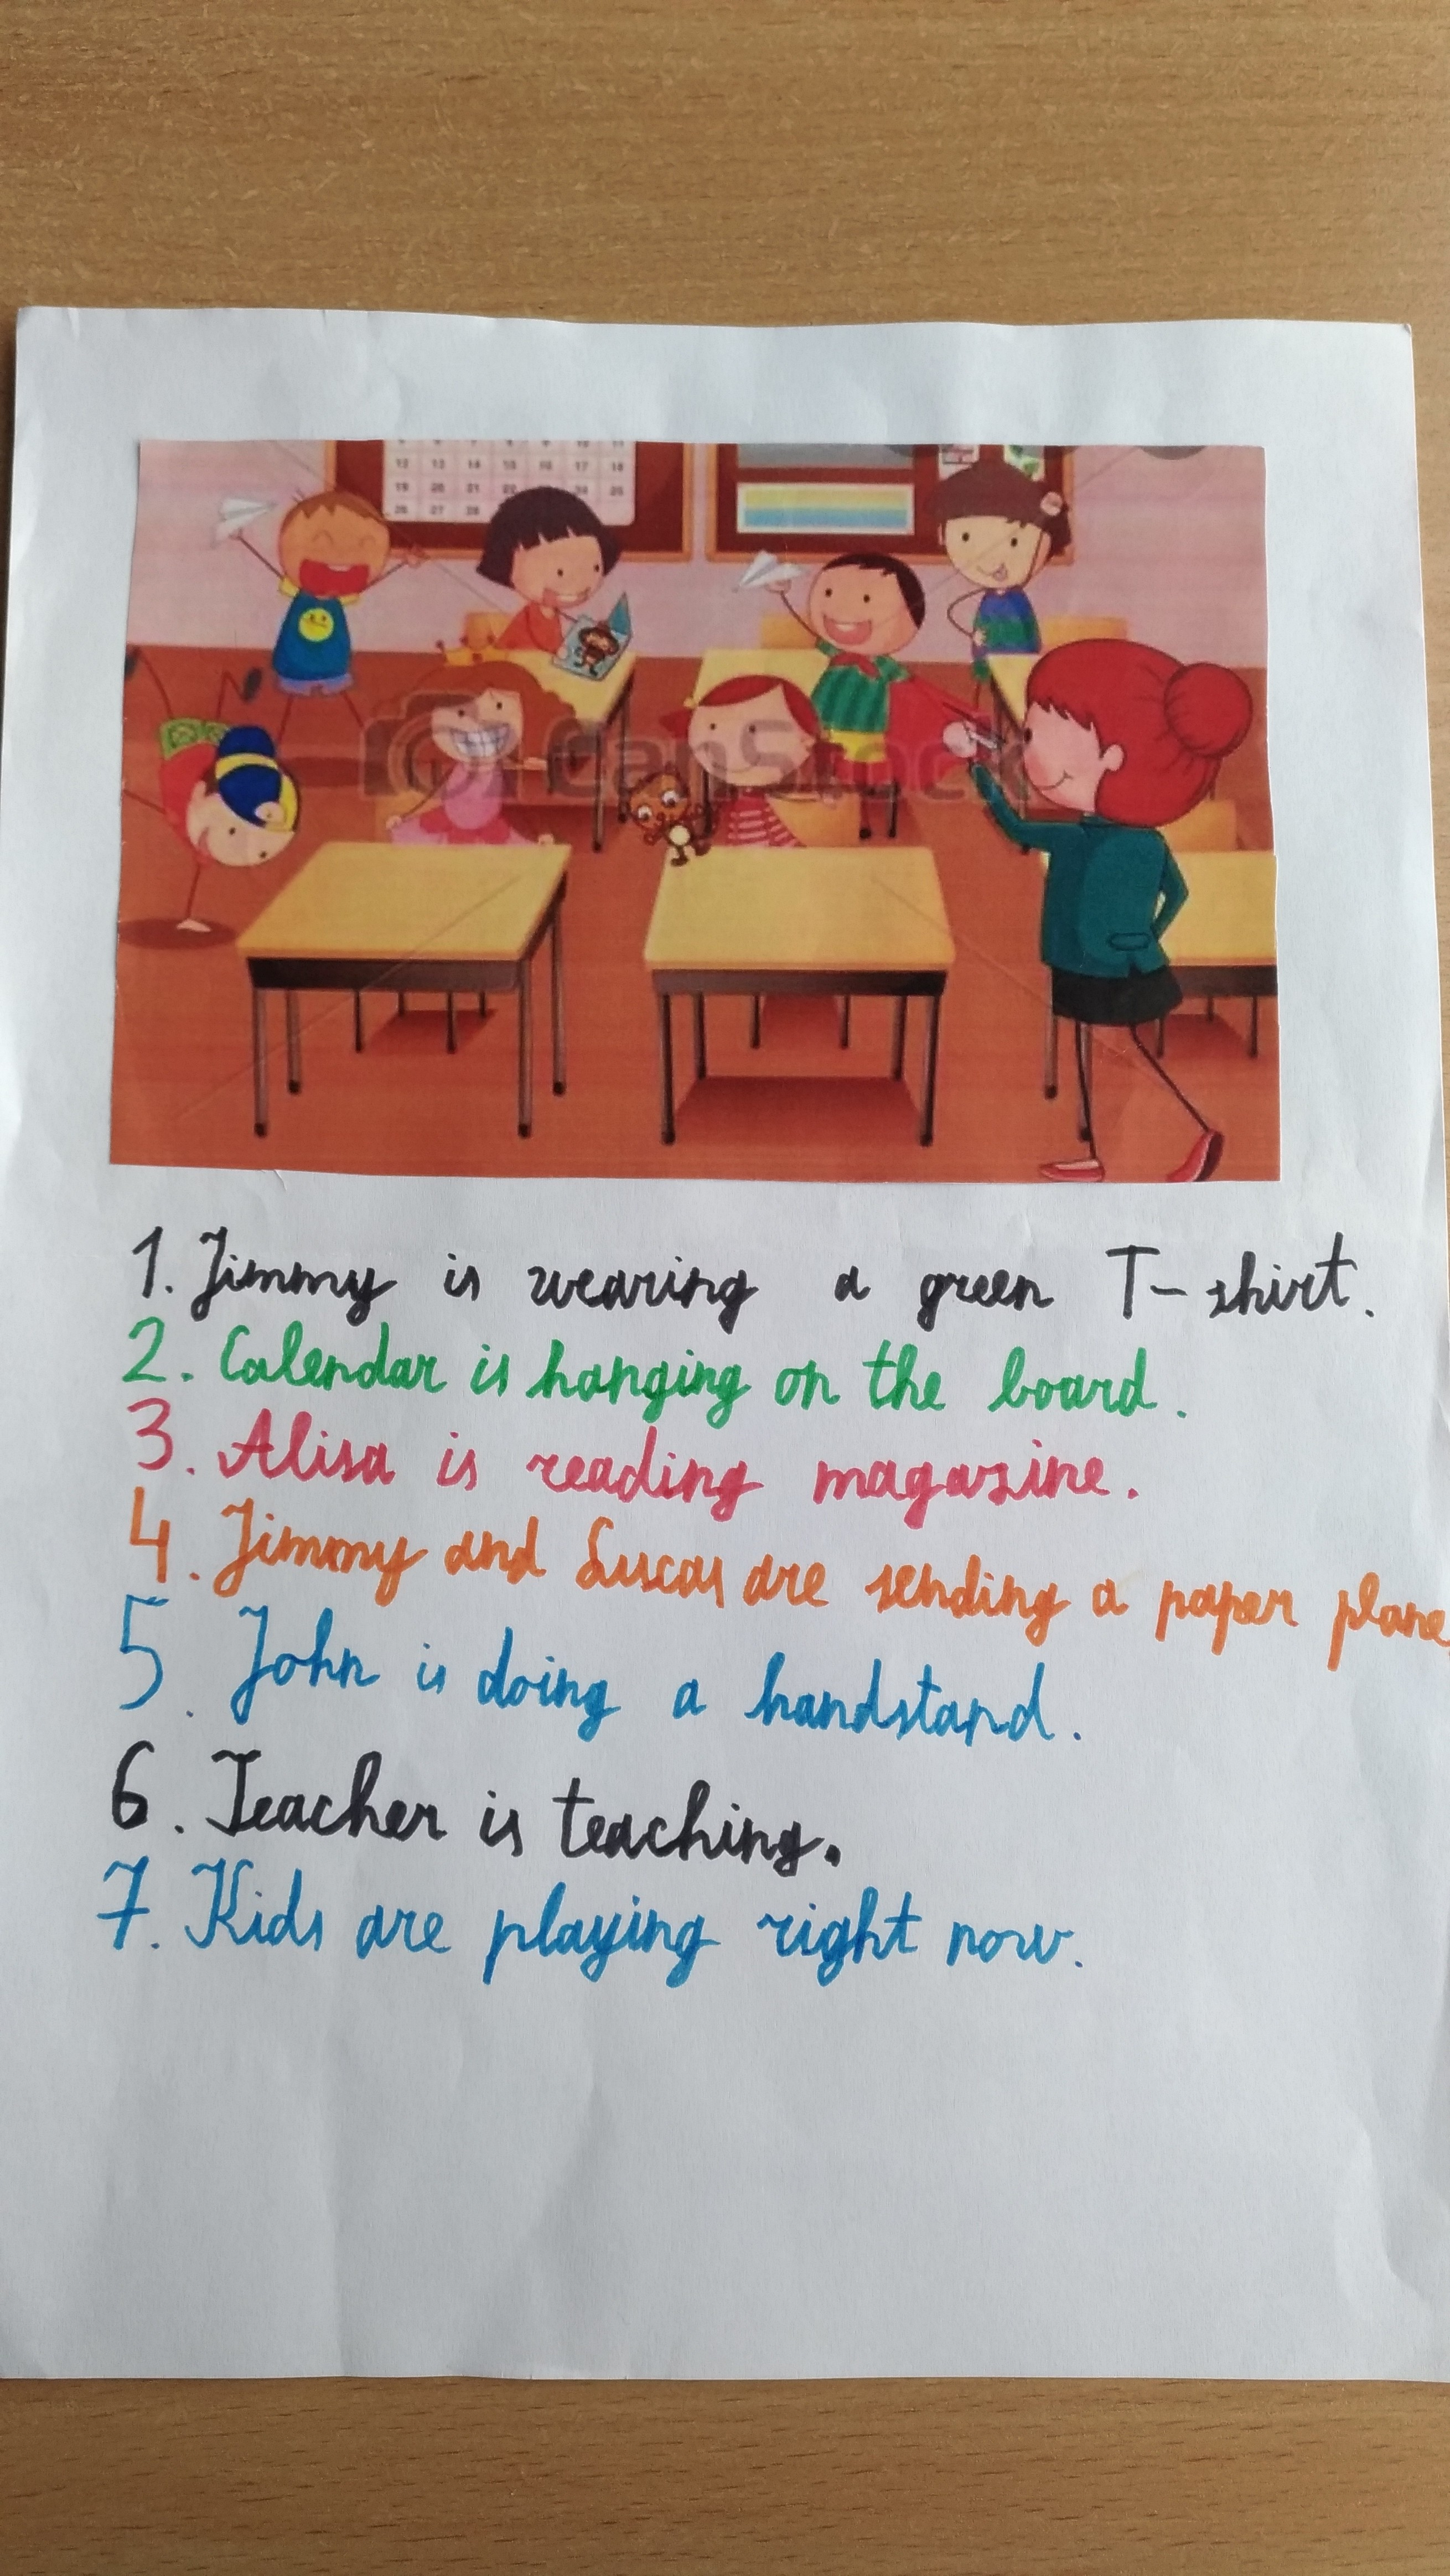 present-continuous-story-Level-A1-Grade-5-4